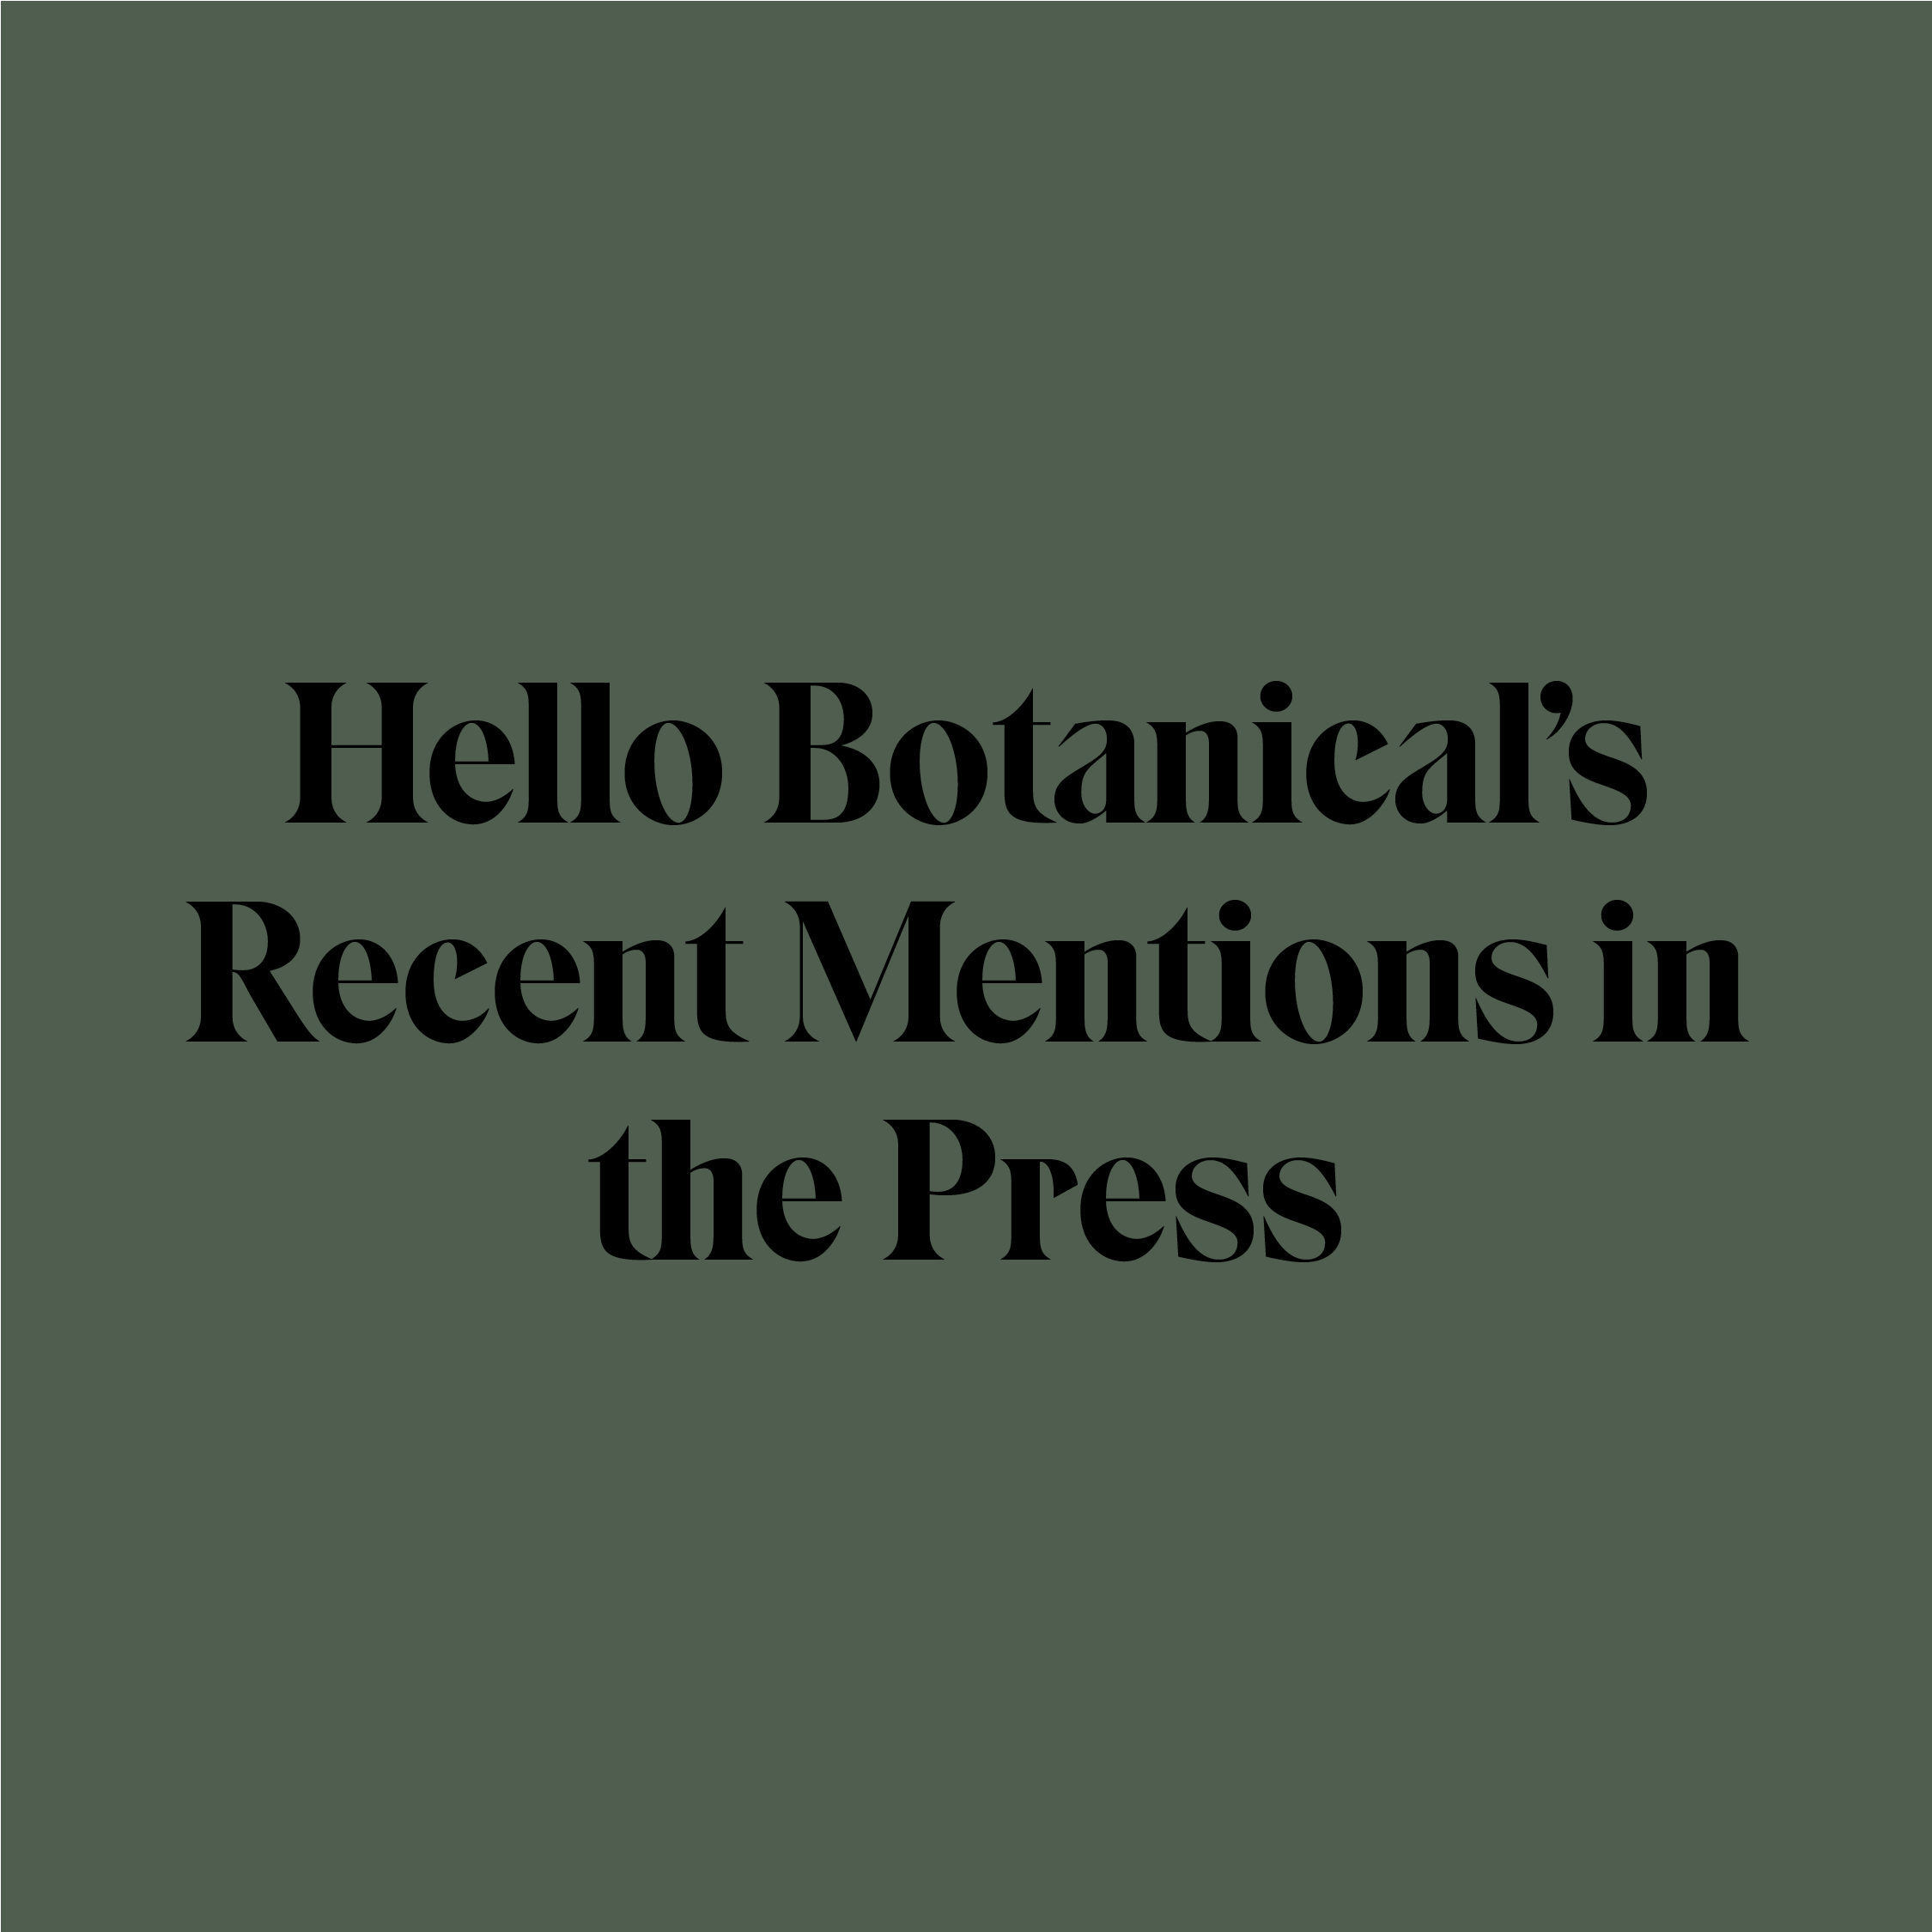 Hello Botanical Melbourne in the press